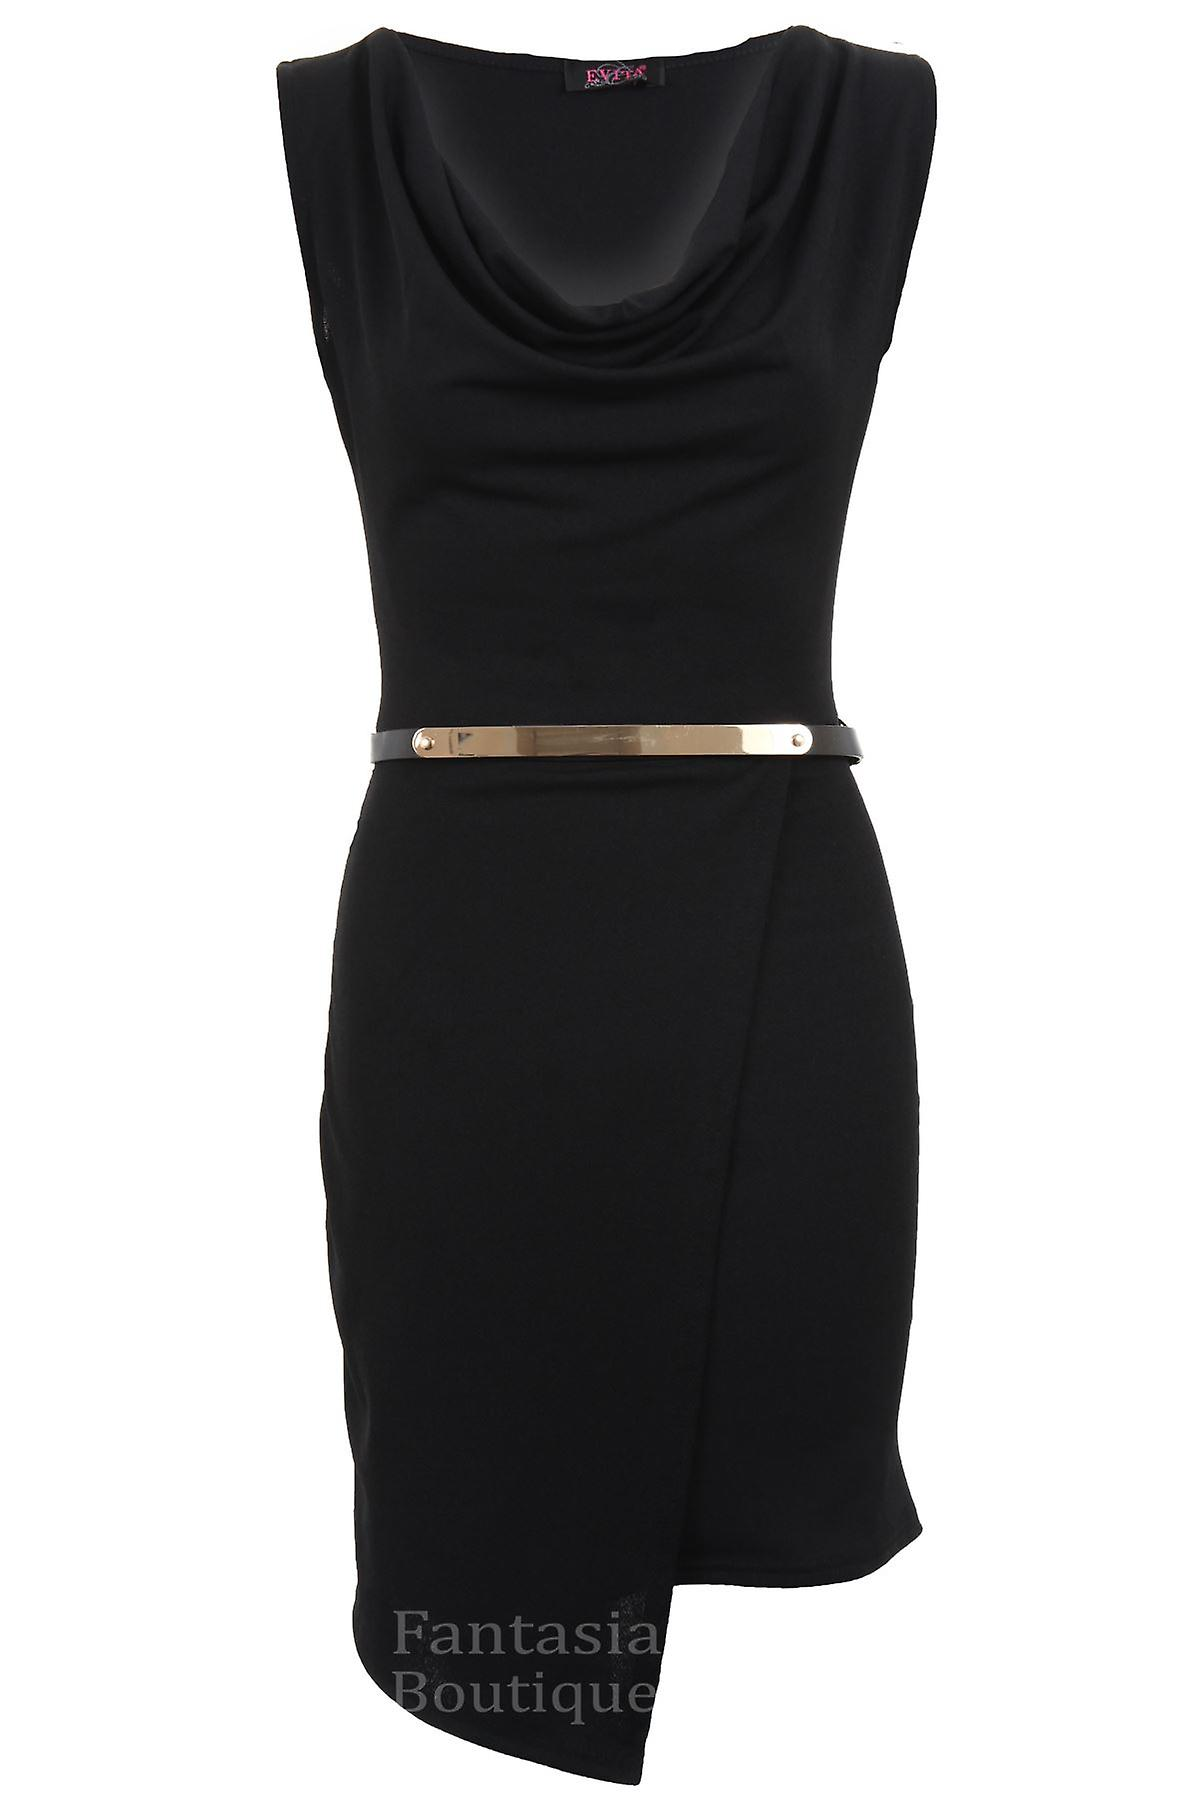 Ladies Cowl Neck Plain Sleeveless Waterfall Gold Belted Bodycon Women's Dress